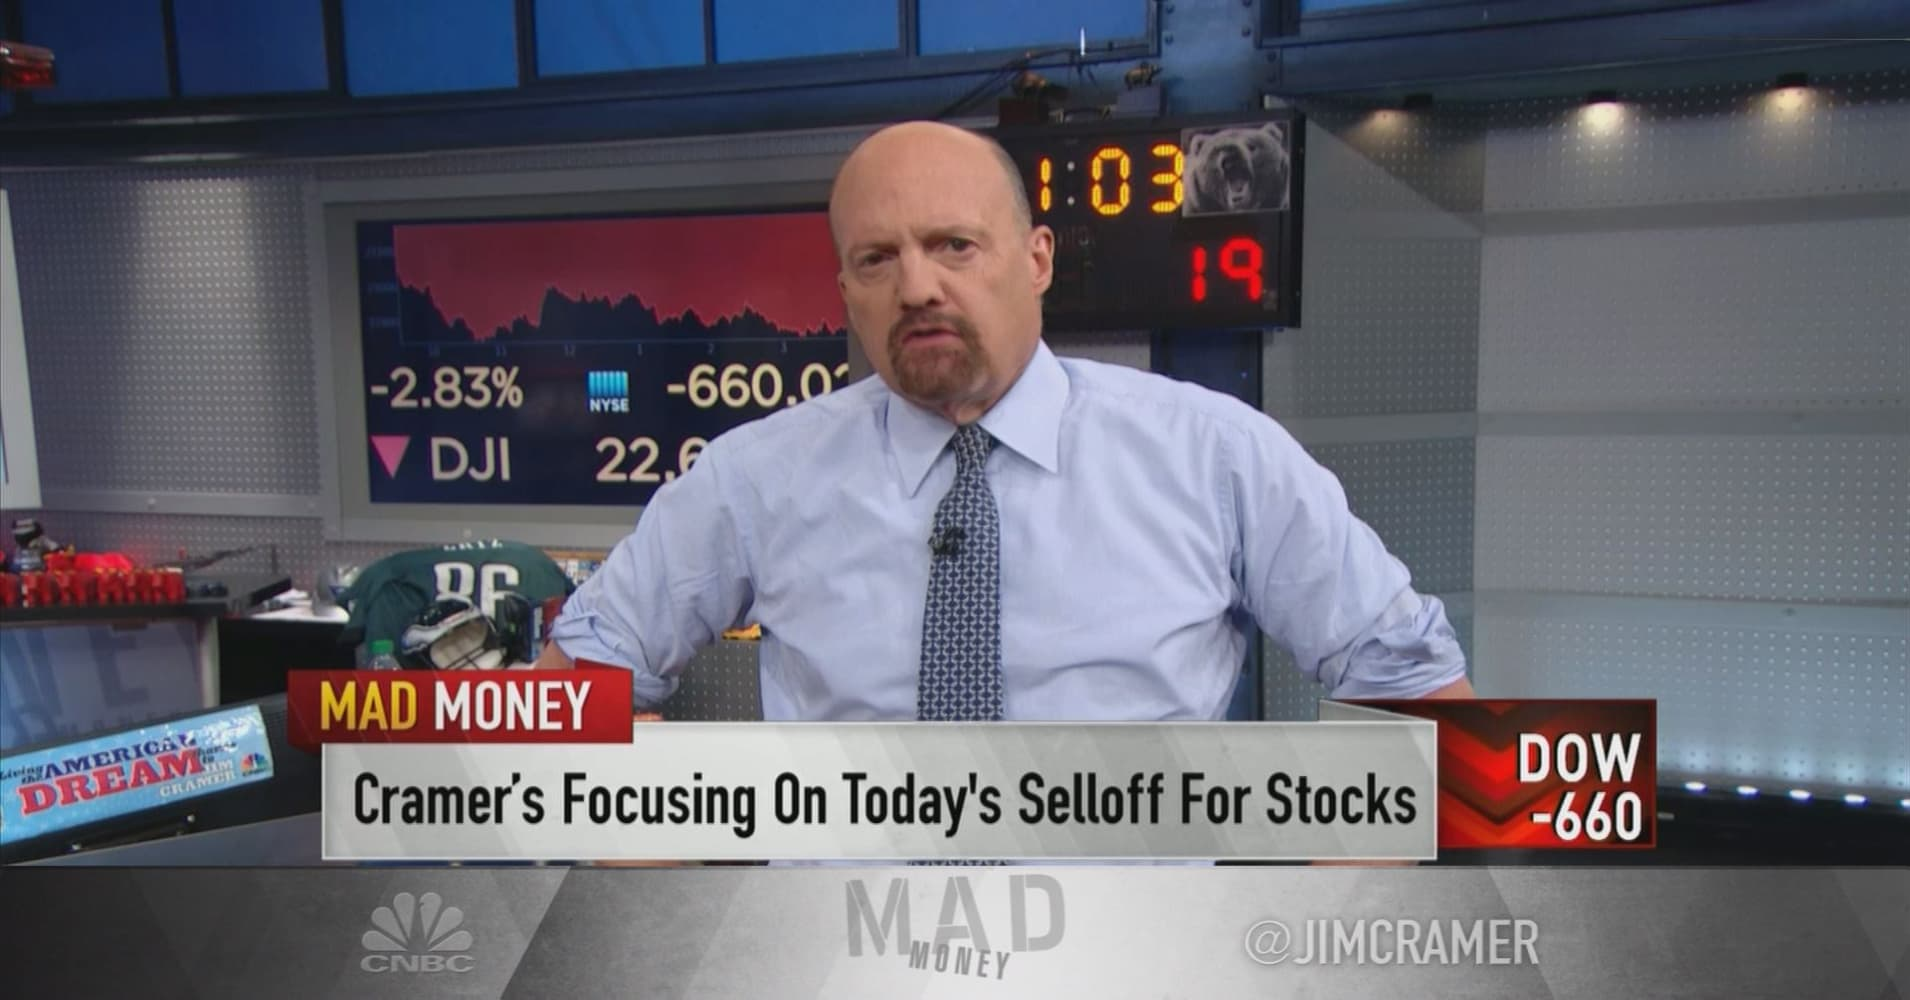 Cramer: Time to buy recession-proof stocks like Clorox, PepsiCo, Coca-Cola